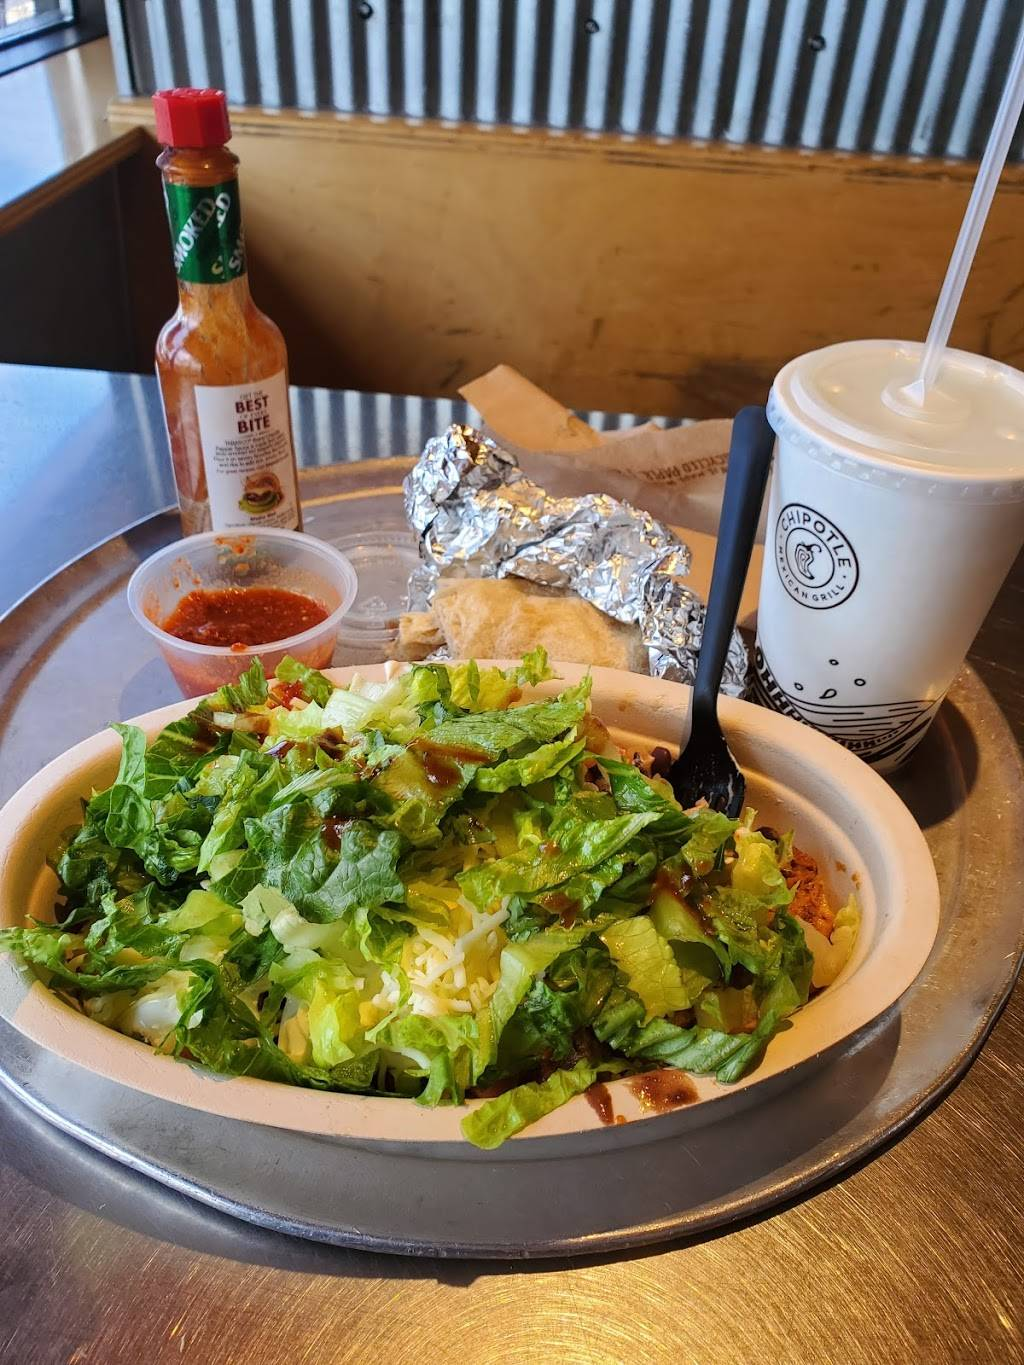 Chipotle Mexican Grill | restaurant | 5079 N Academy Blvd, Colorado Springs, CO 80918, USA | 7195320900 OR +1 719-532-0900